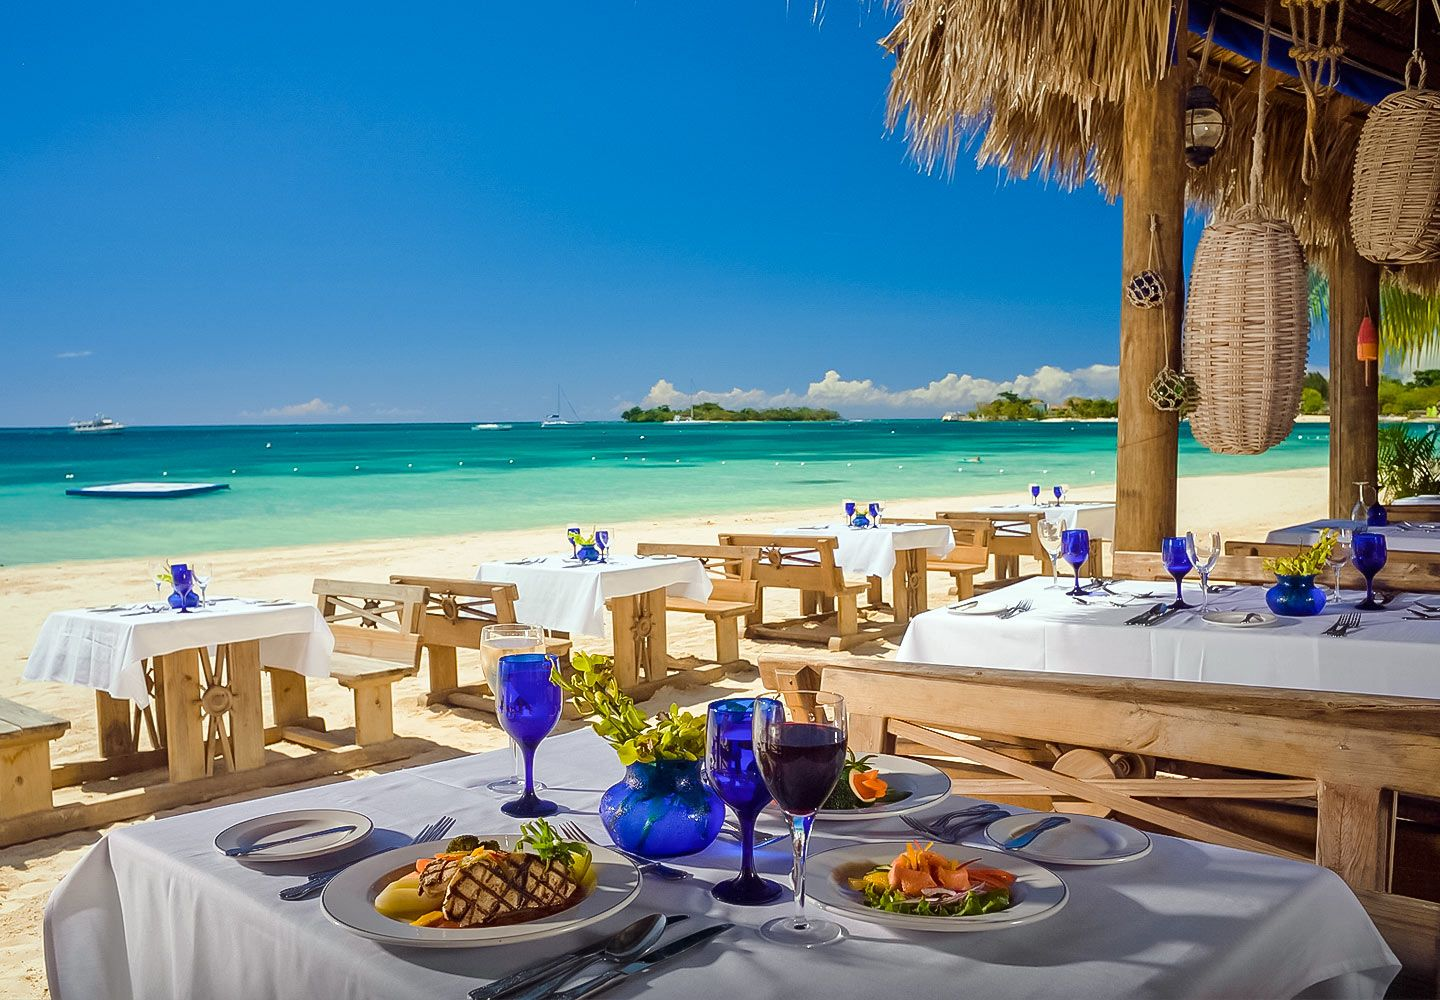 Sandals' signature restaurant, Barefoot by the Sea